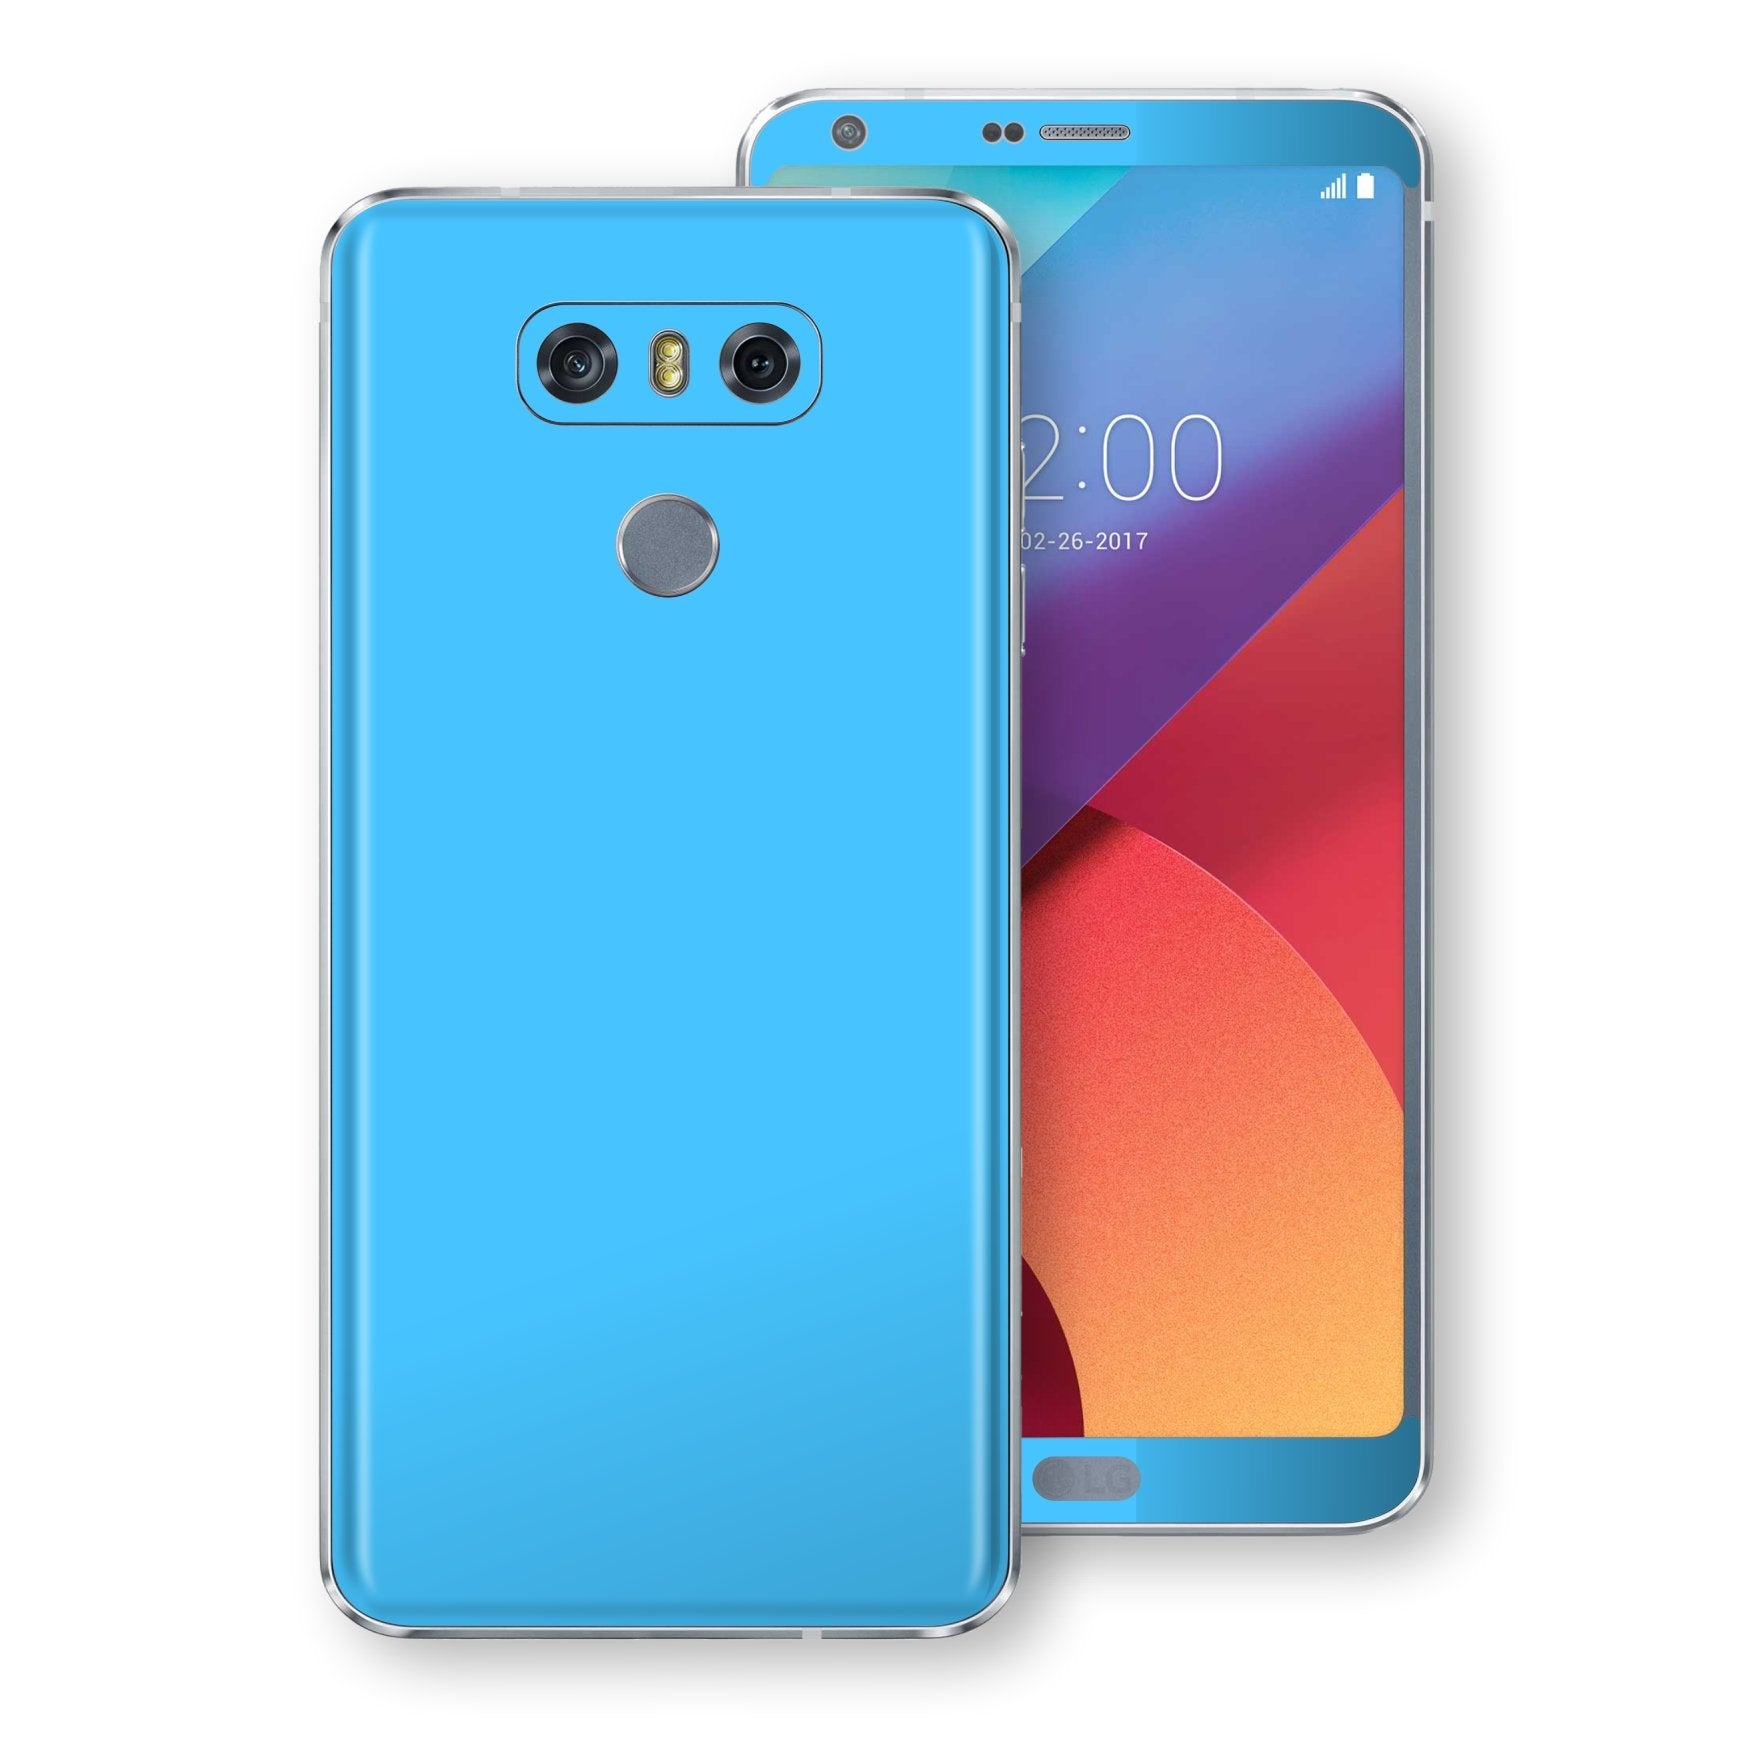 LG G6 Blue Matt Skin, Decal, Wrap, Protector, Cover by EasySkinz | EasySkinz.com